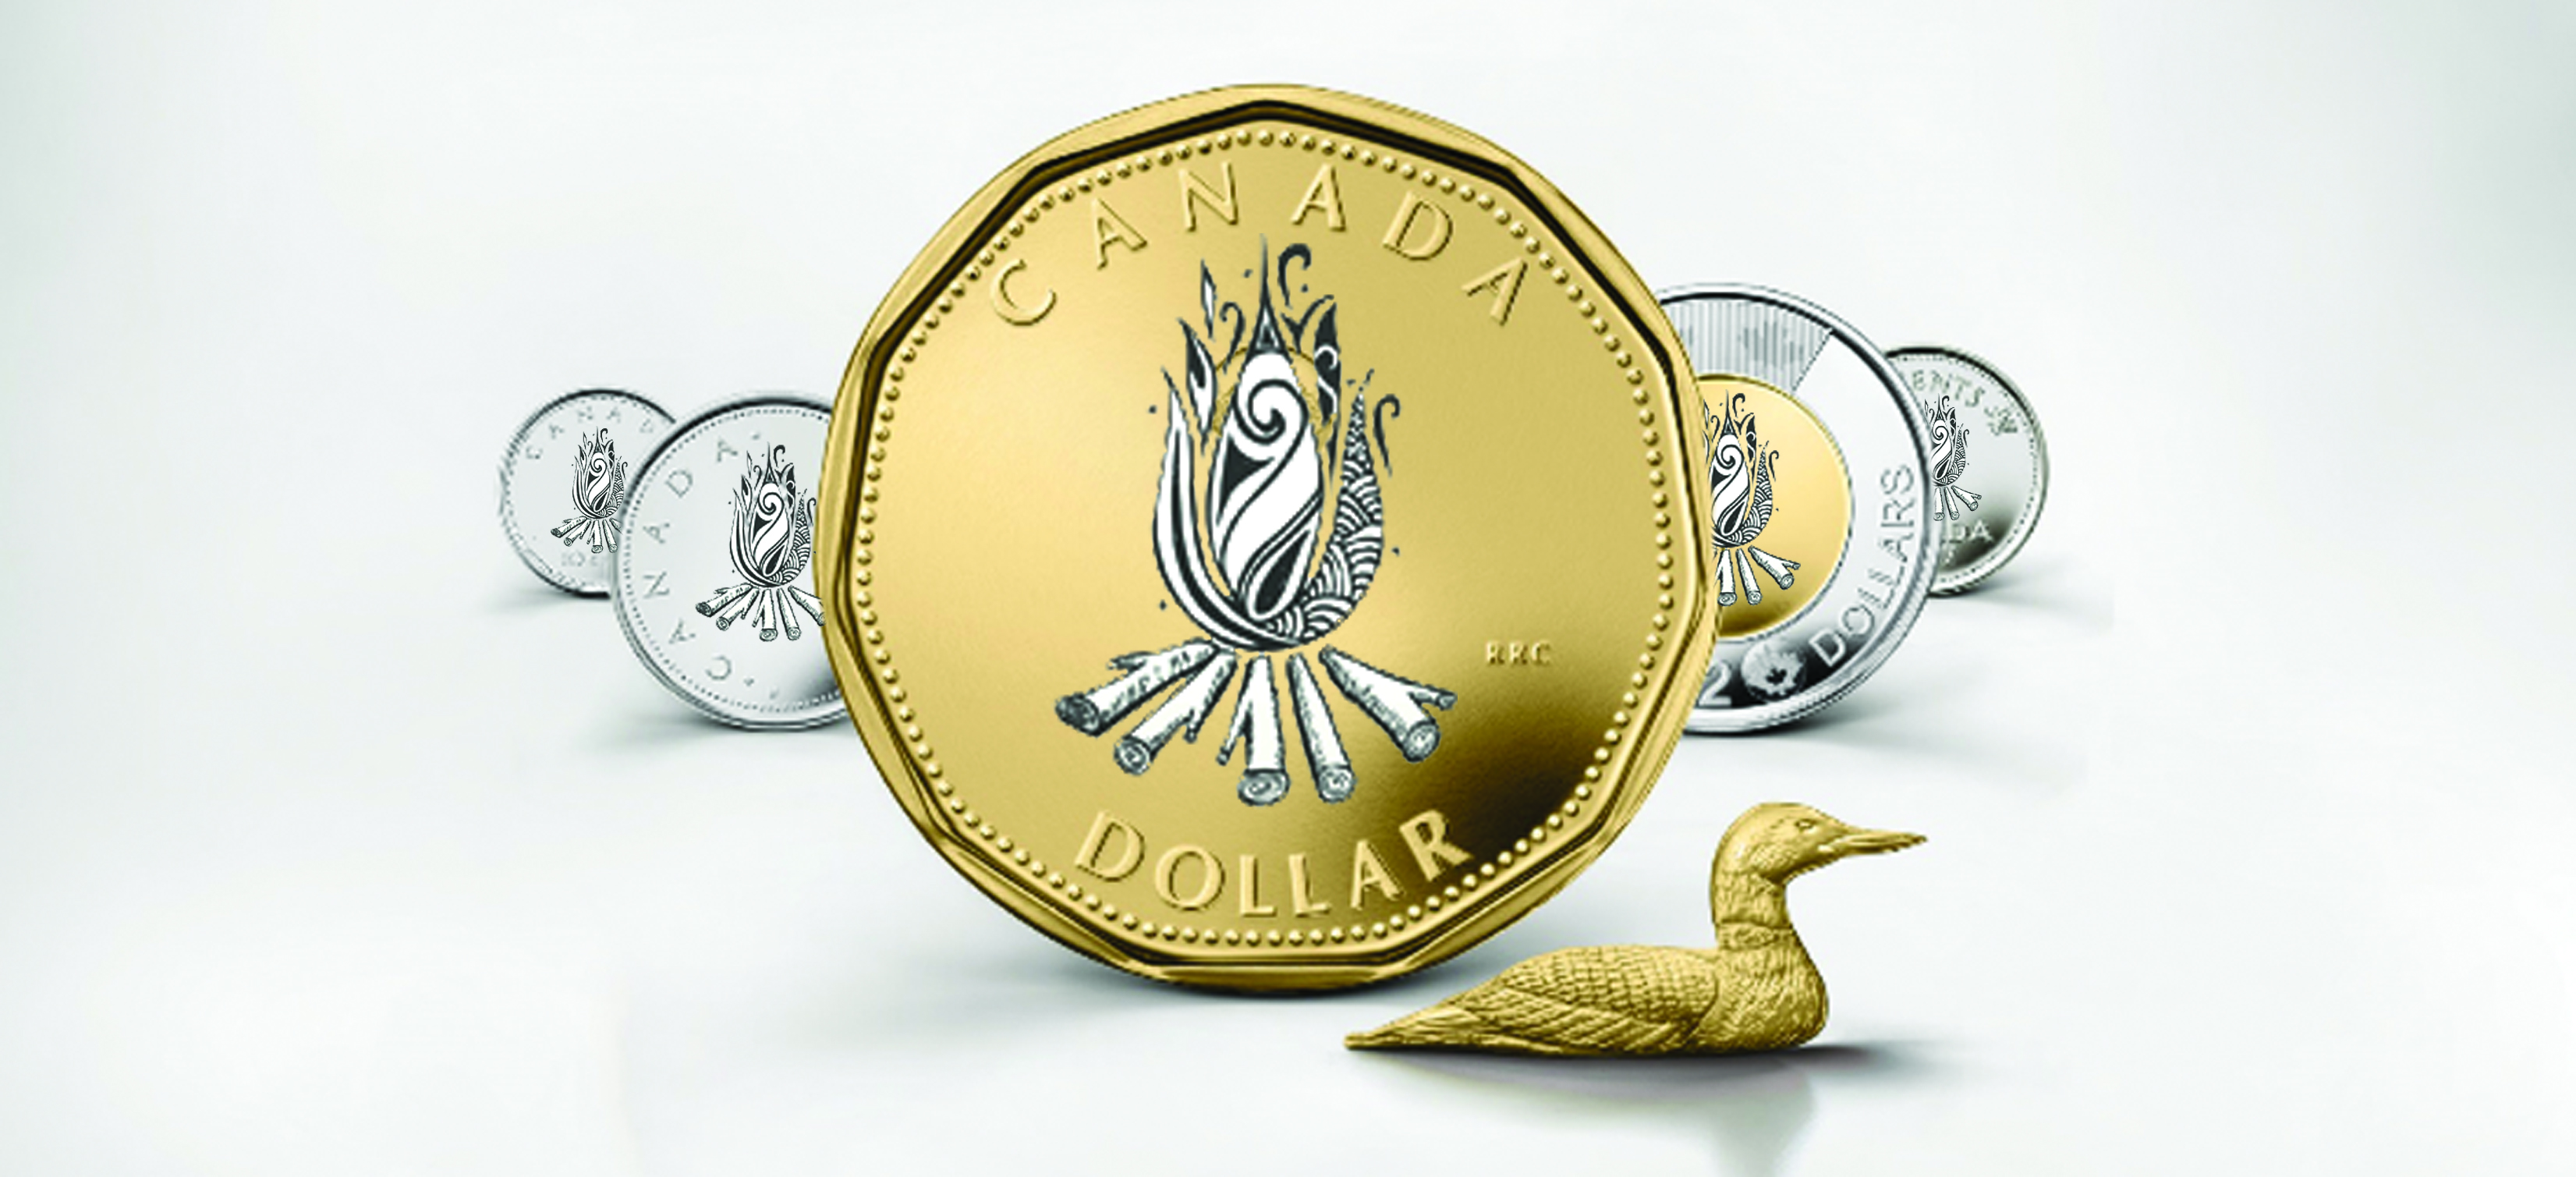 Canadian Mint Coin Contest